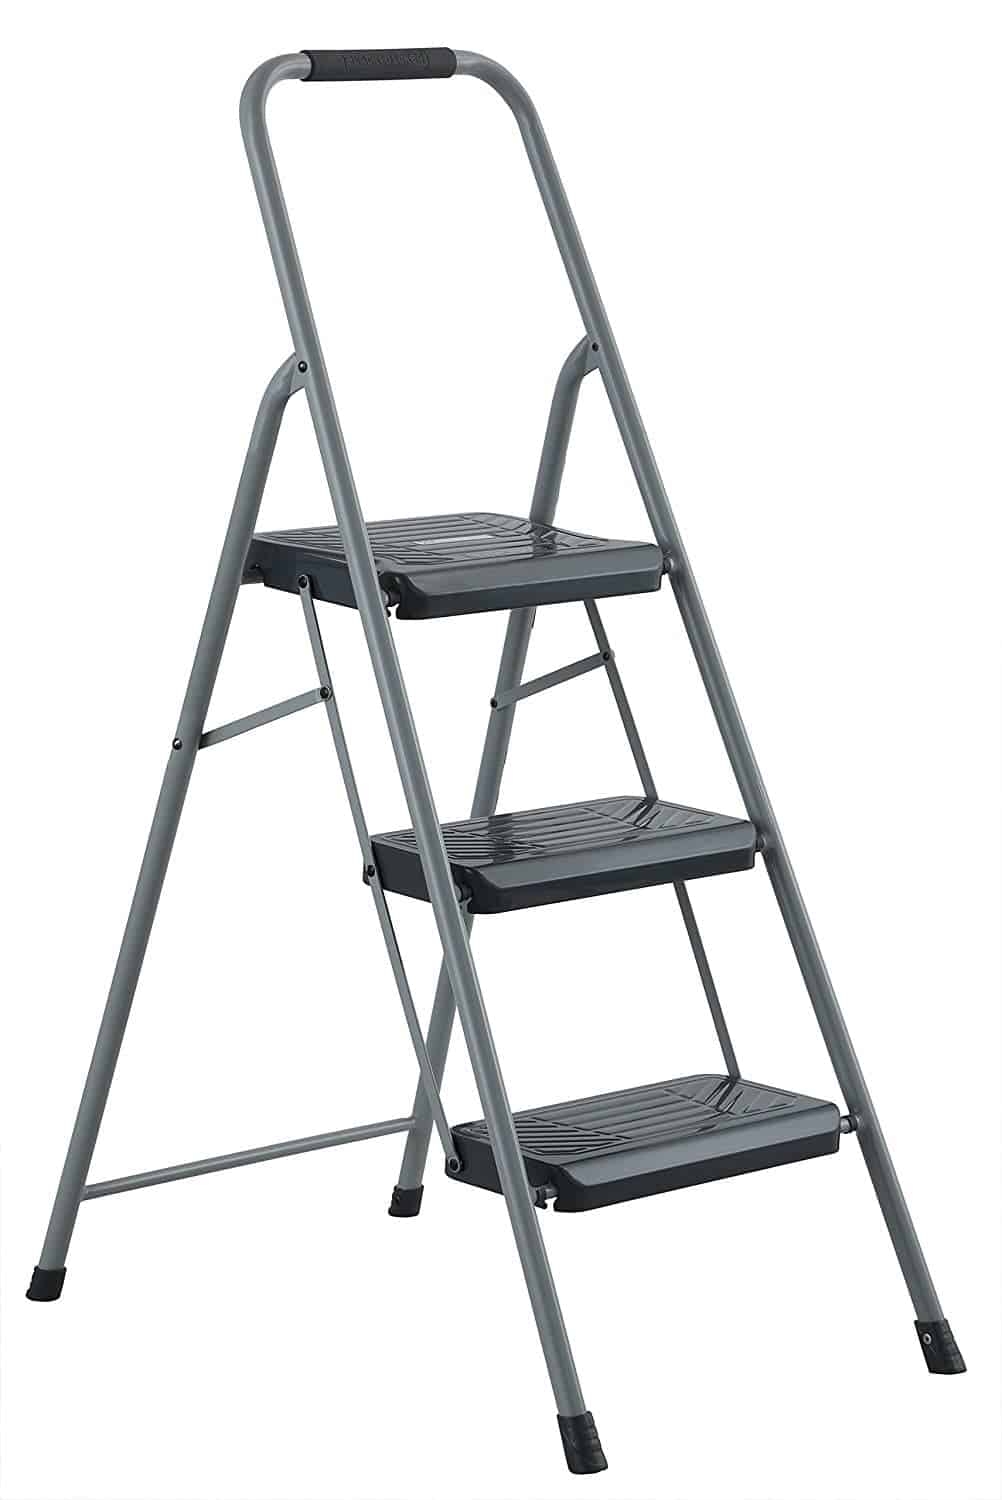 Two step steel stool with slip-resistant rubber feet and lightweight feature.